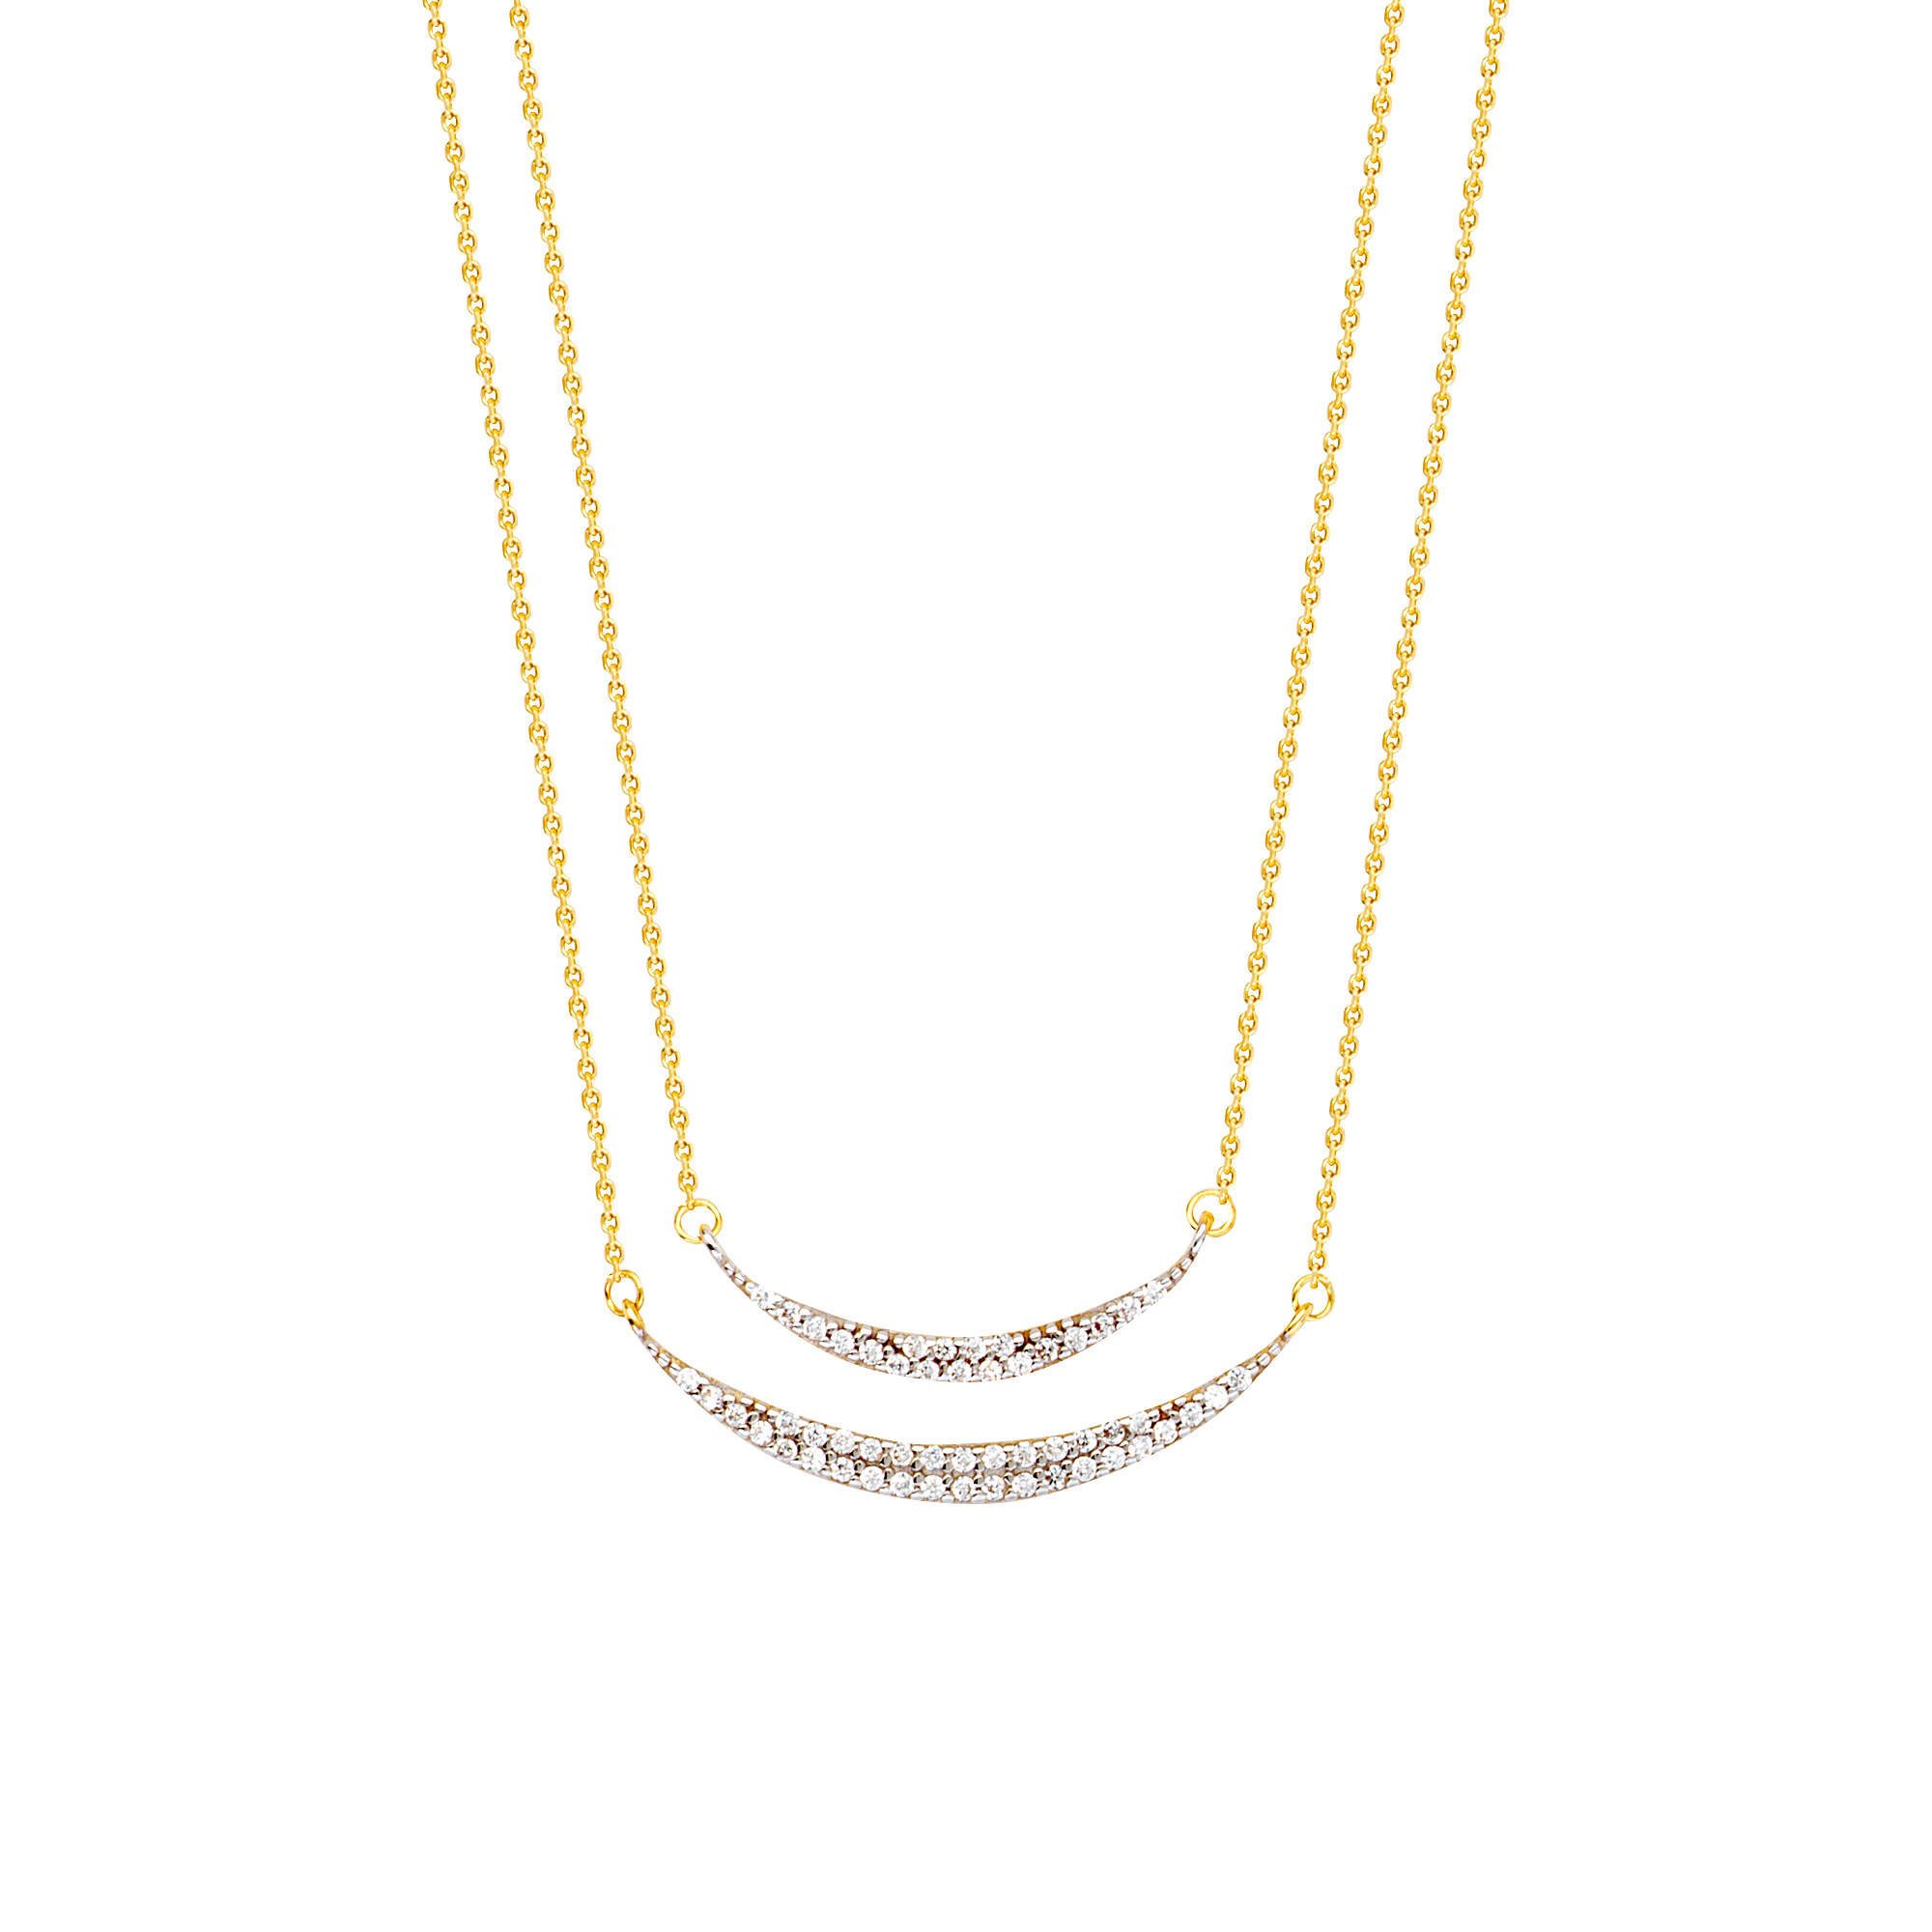 Cresent Moons Necklace, 14Kt Gold Cresent Moon  18